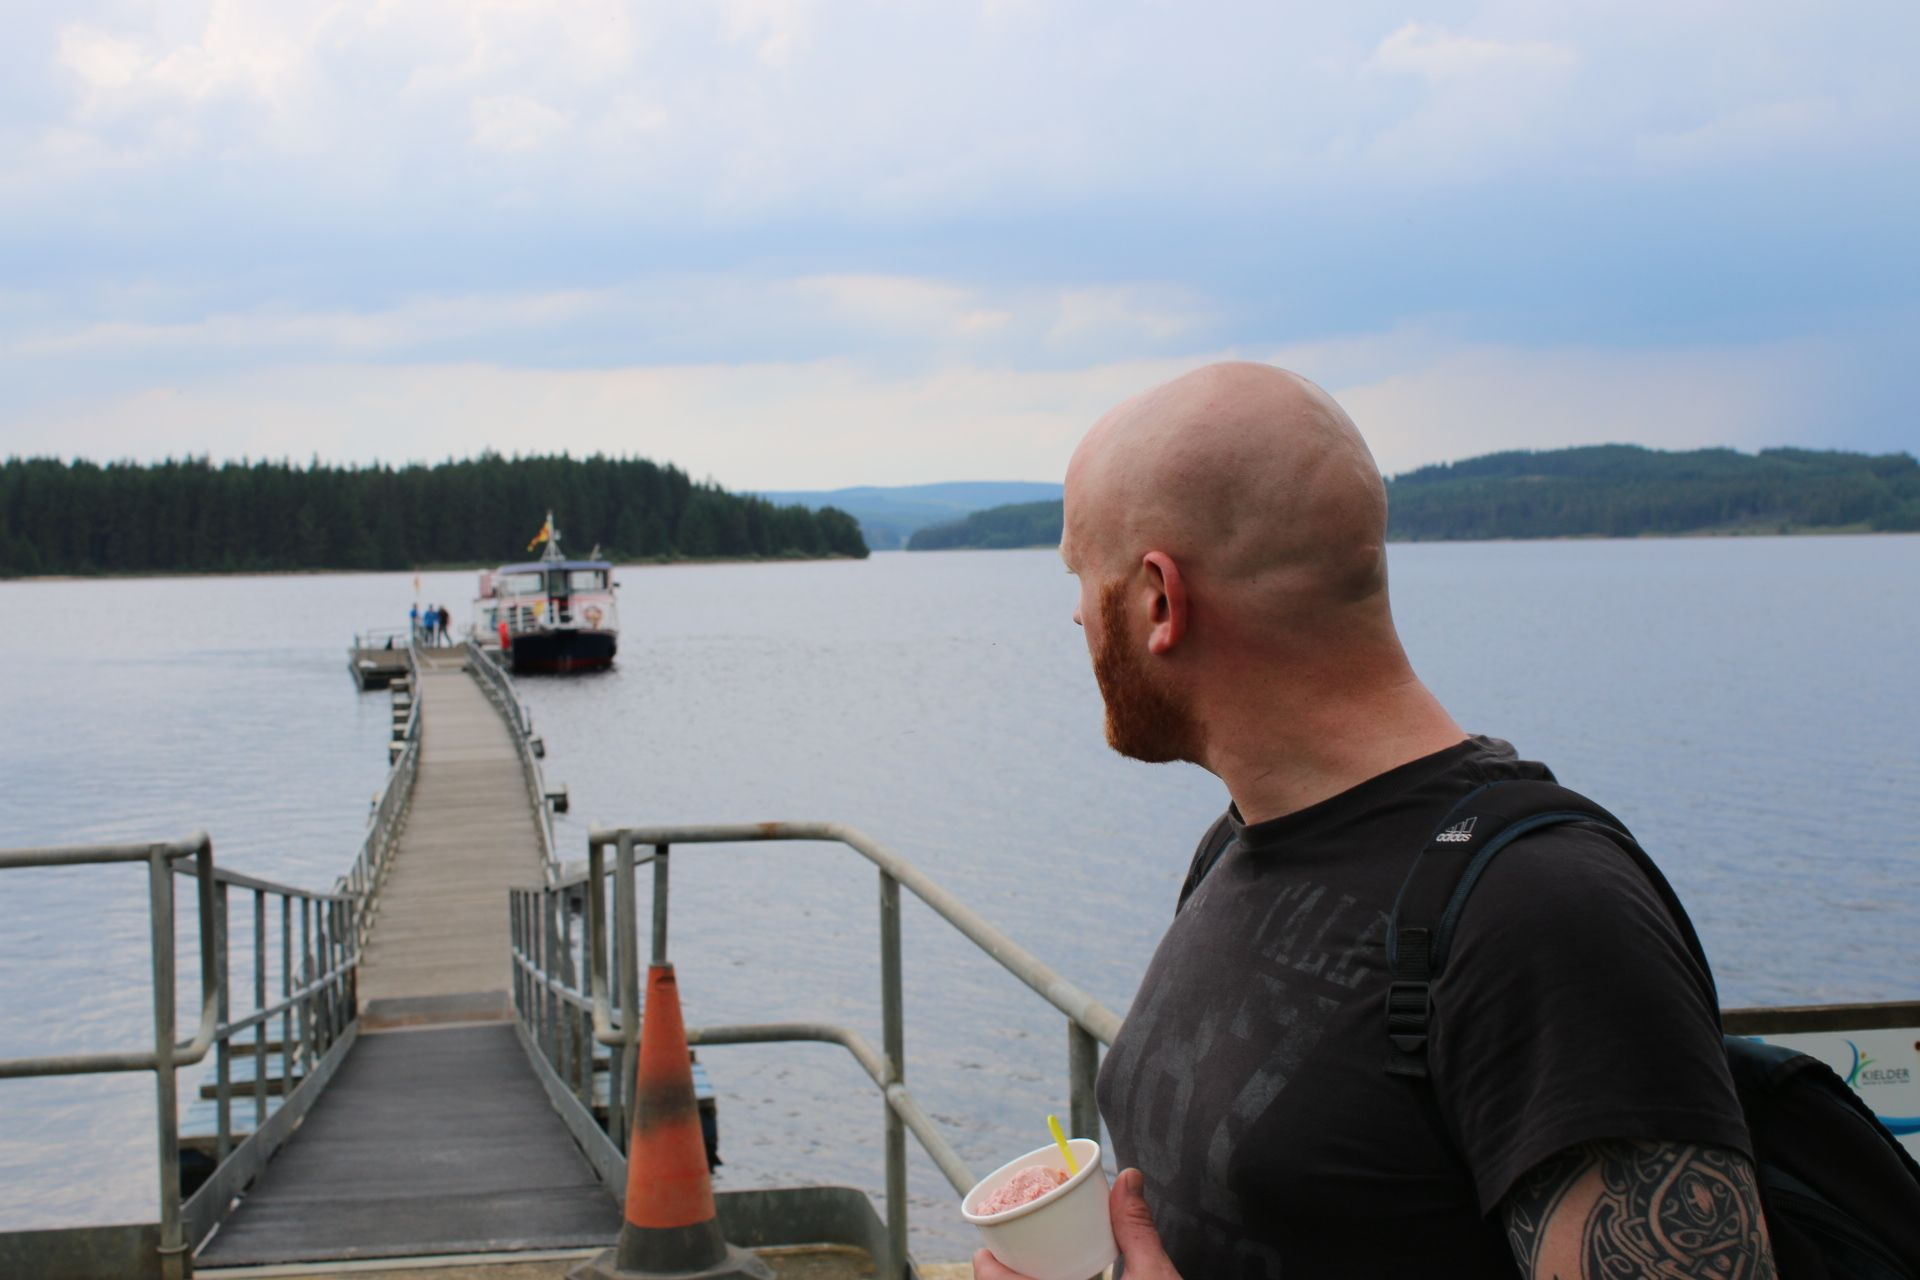 Enjoying Café on the Water's Ice Creams while we wait for The Osprey Ferry to complete it's lap of the Kielder Reservoir  - Photography by Jonathan Webb